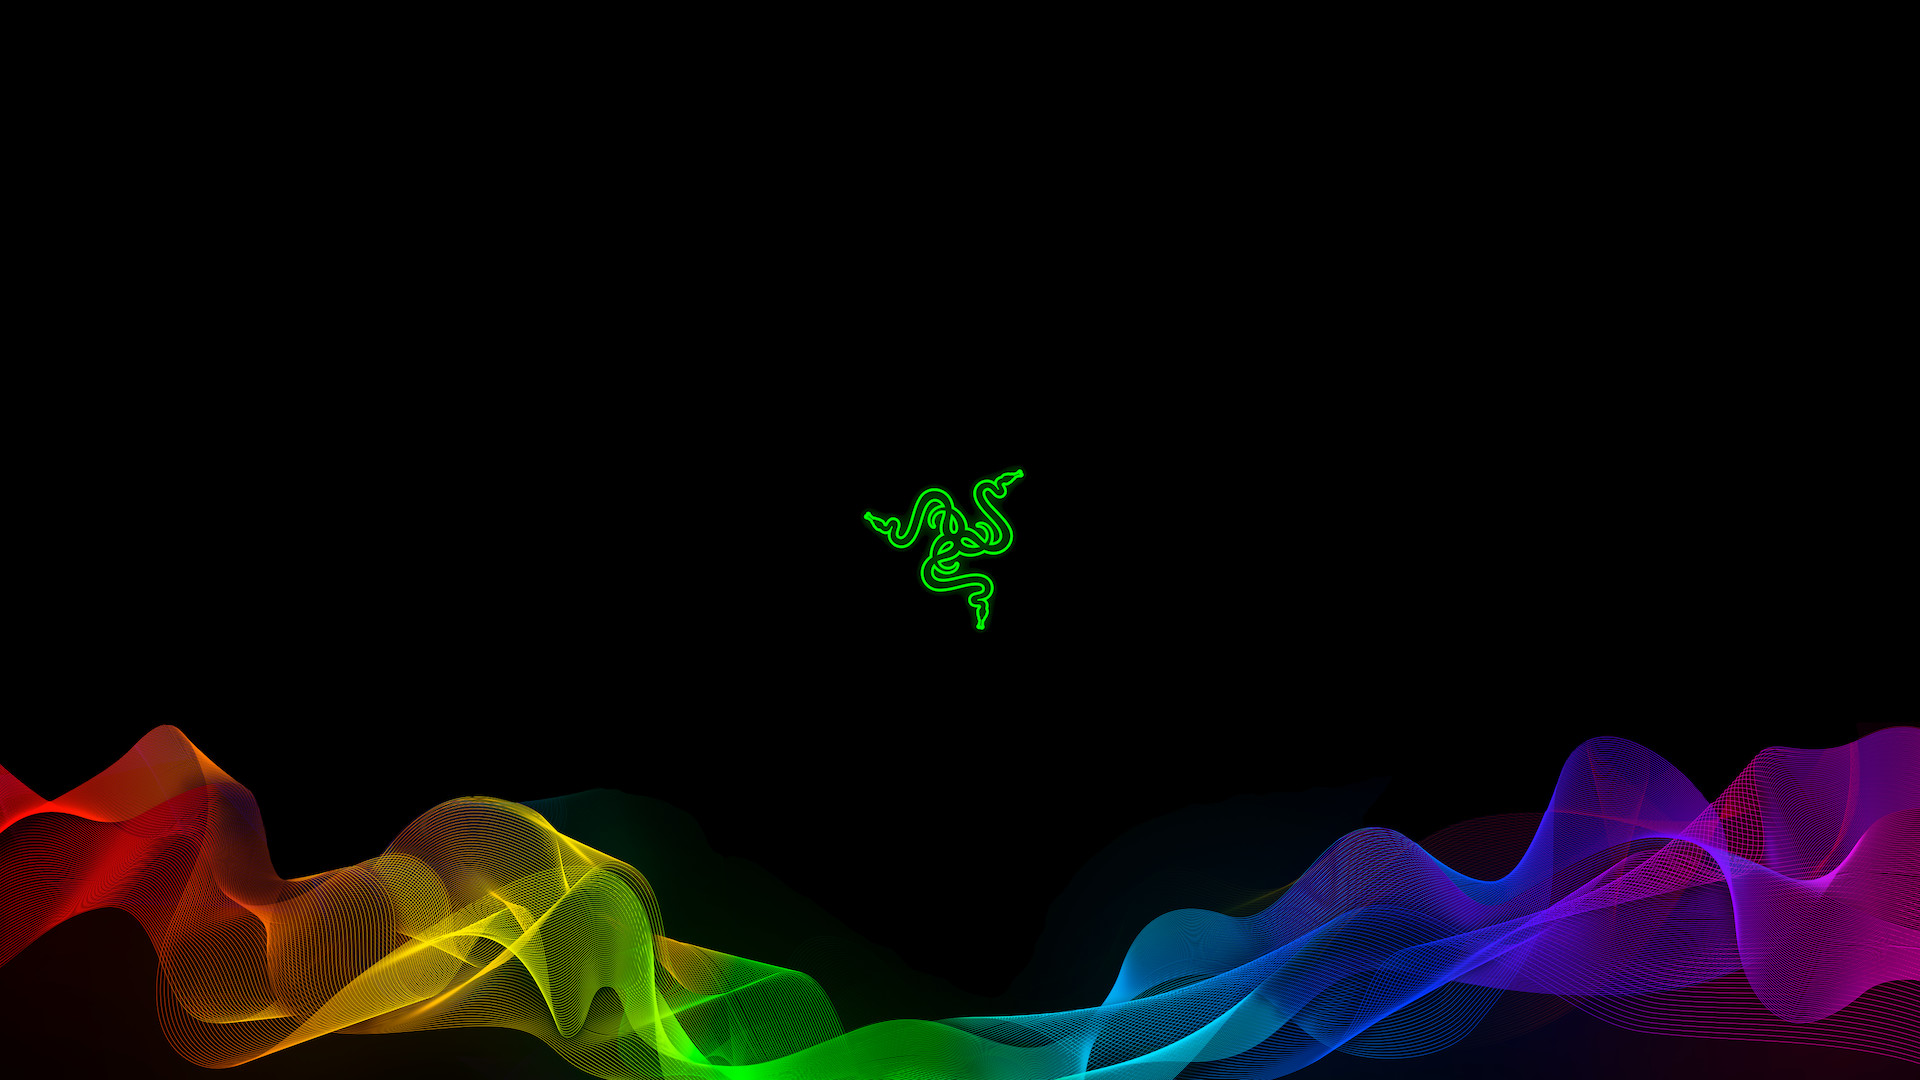 Razer Chroma Wallpapers (74+ images)